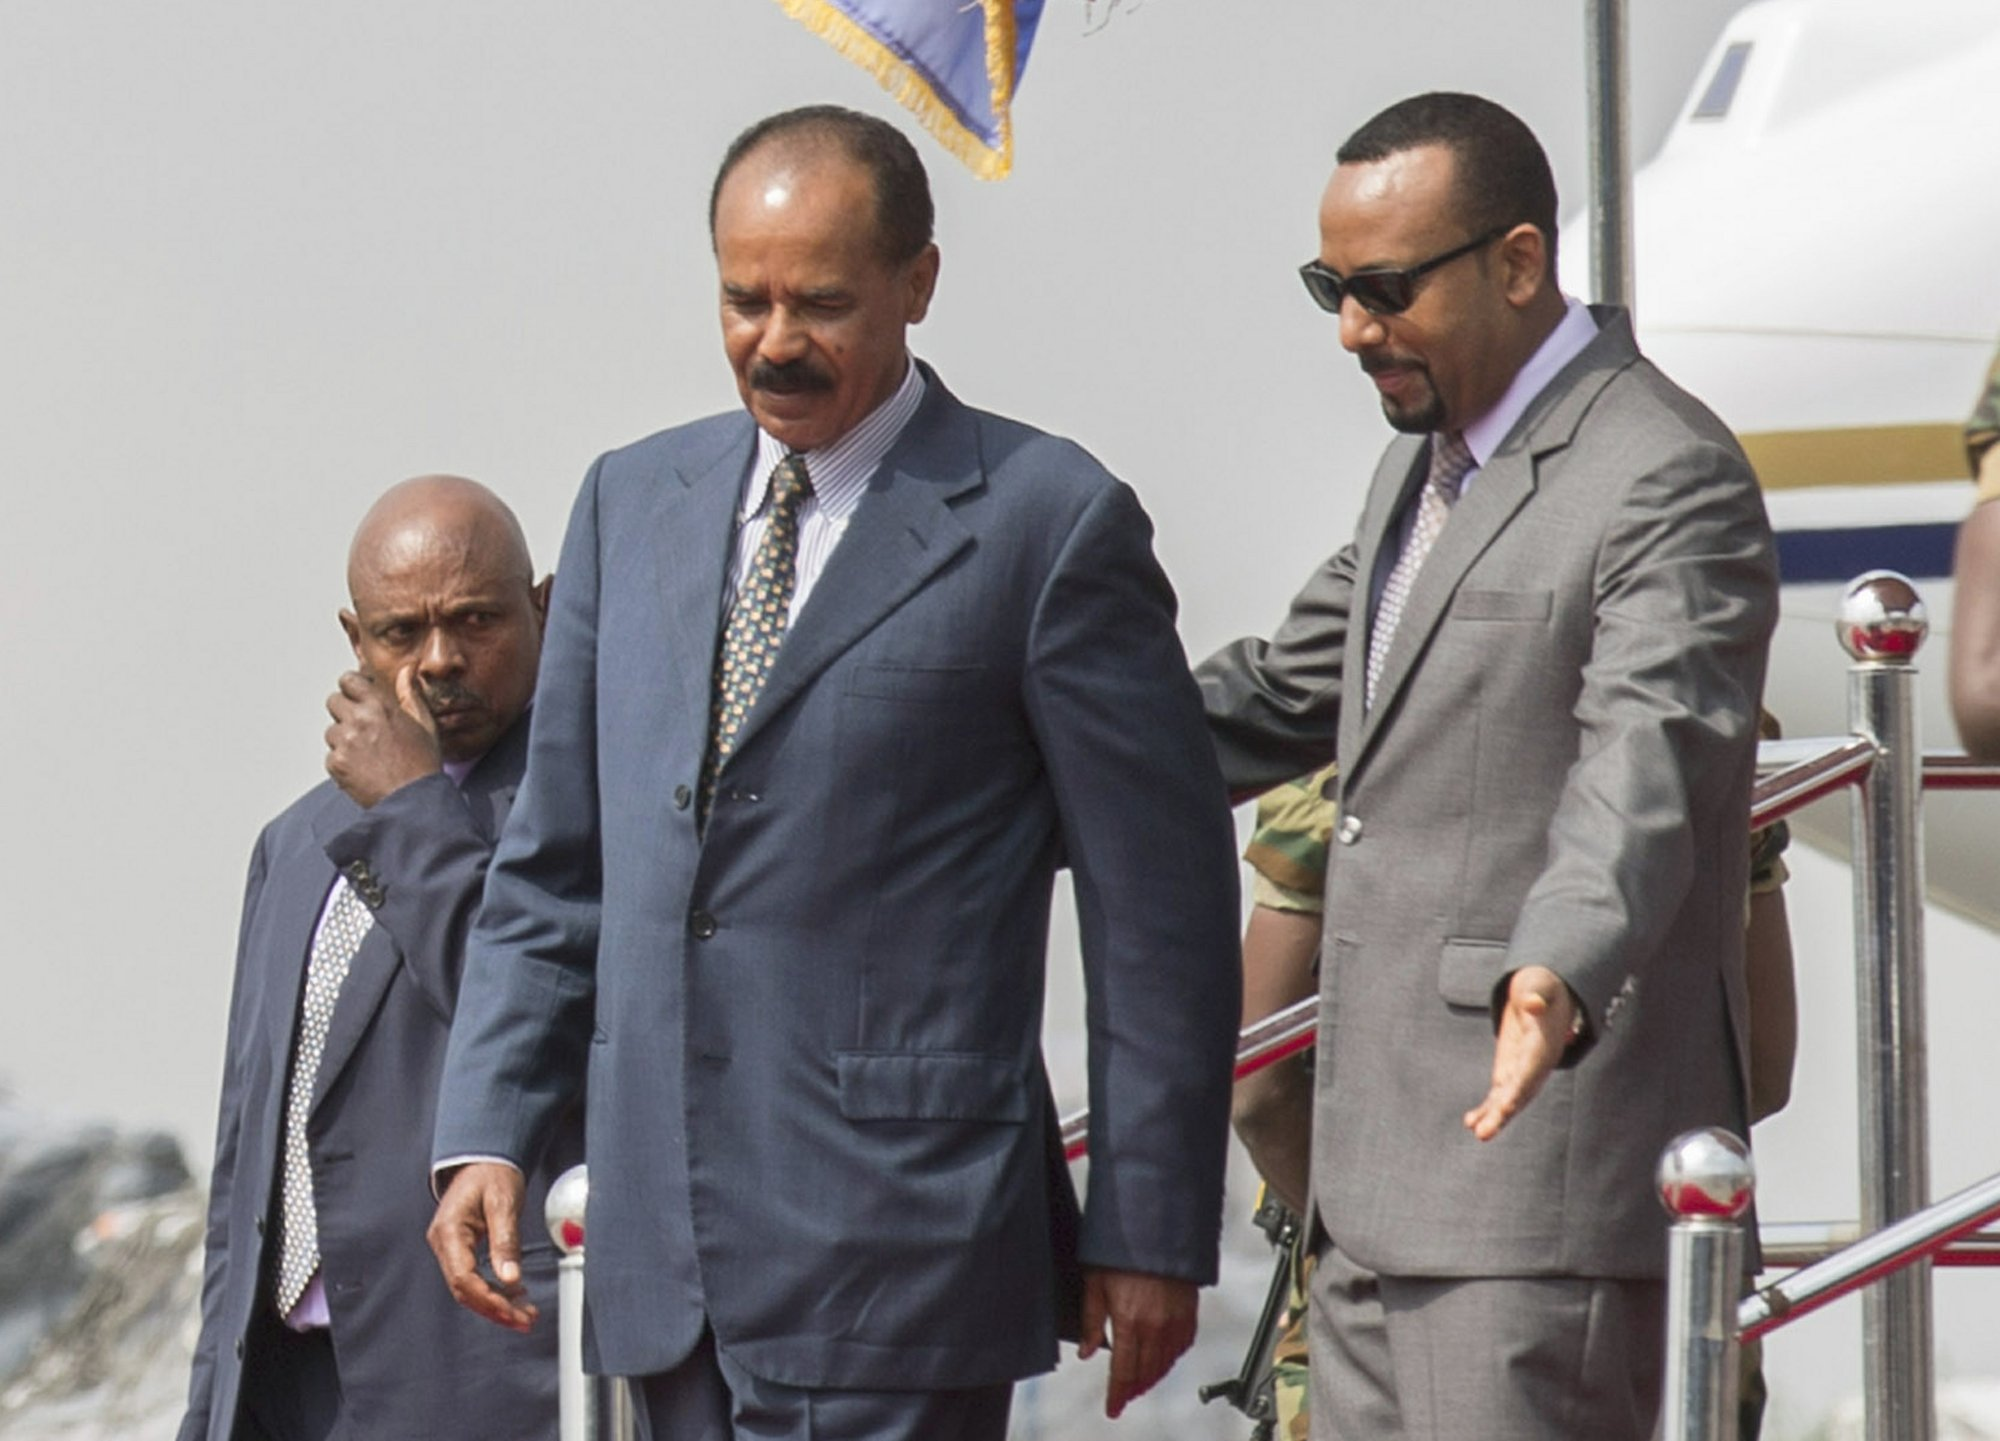 the men of the year 2018 2018 PEACEMAKERS & STATESMENS: Eritrea President Isaias Afwerki